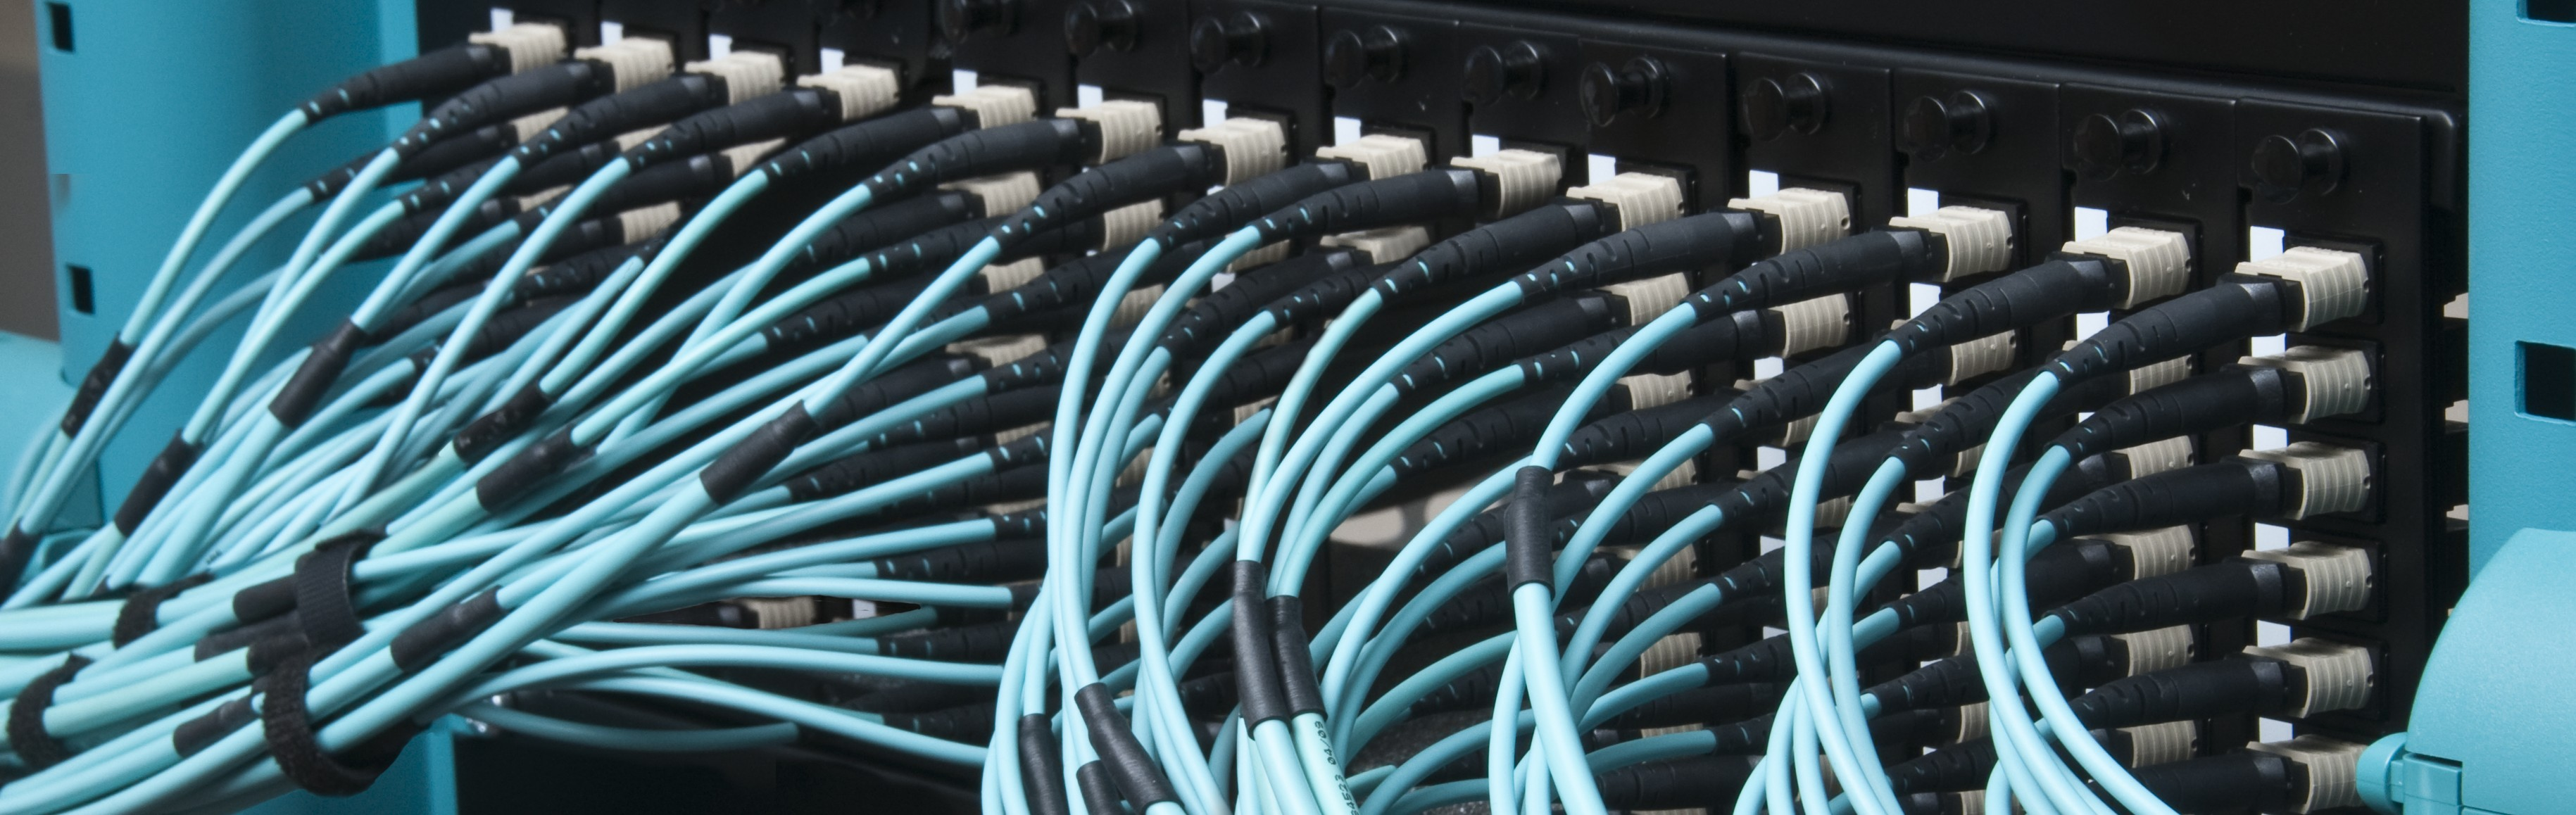 pre-terminated cabling system